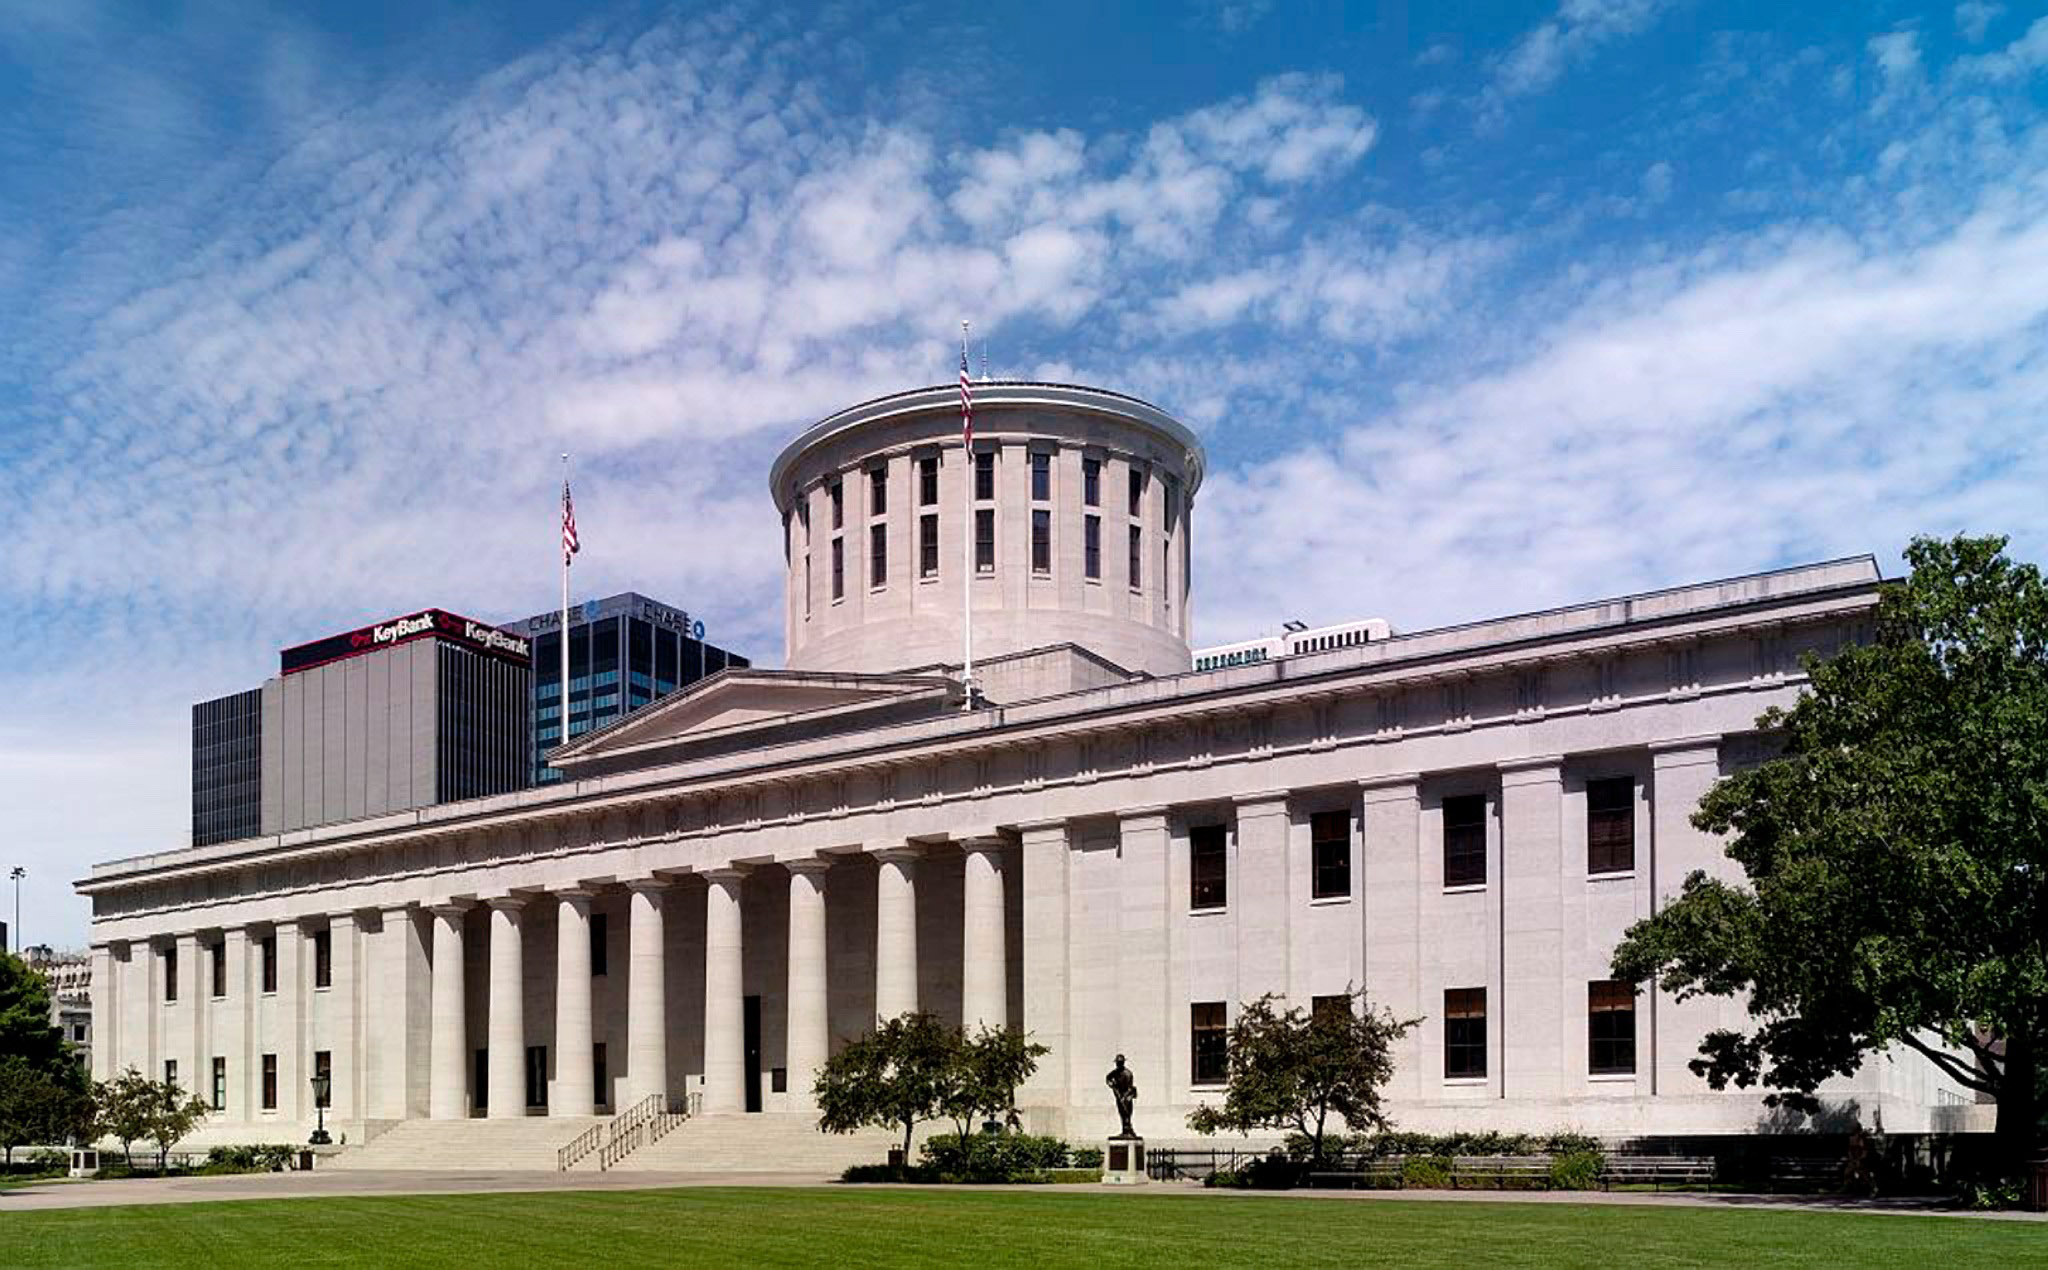 Ohio state capital building in columbus image free stock for Columbus capitale